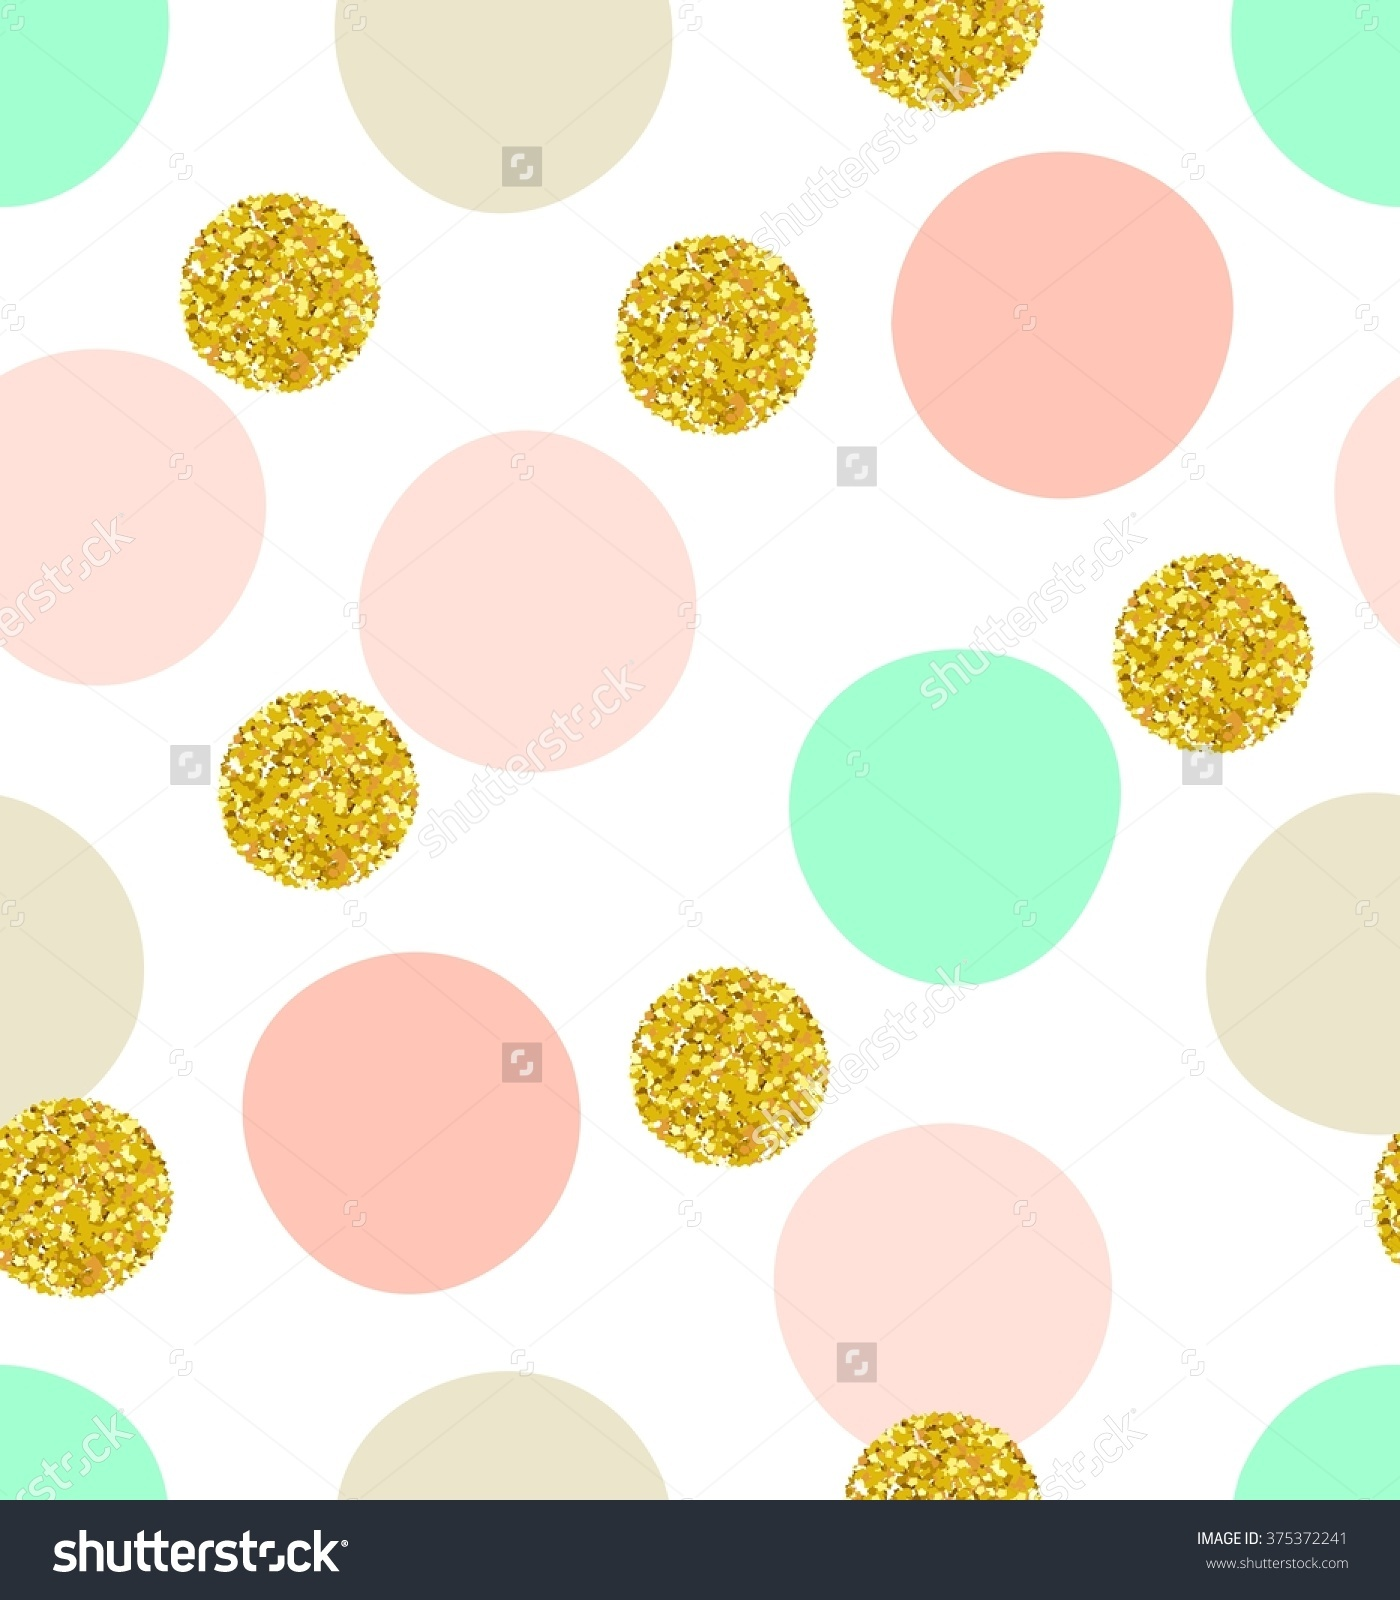 Cute Kids Polka Dot Colorful Seamless Pattern With Glittering Gold.